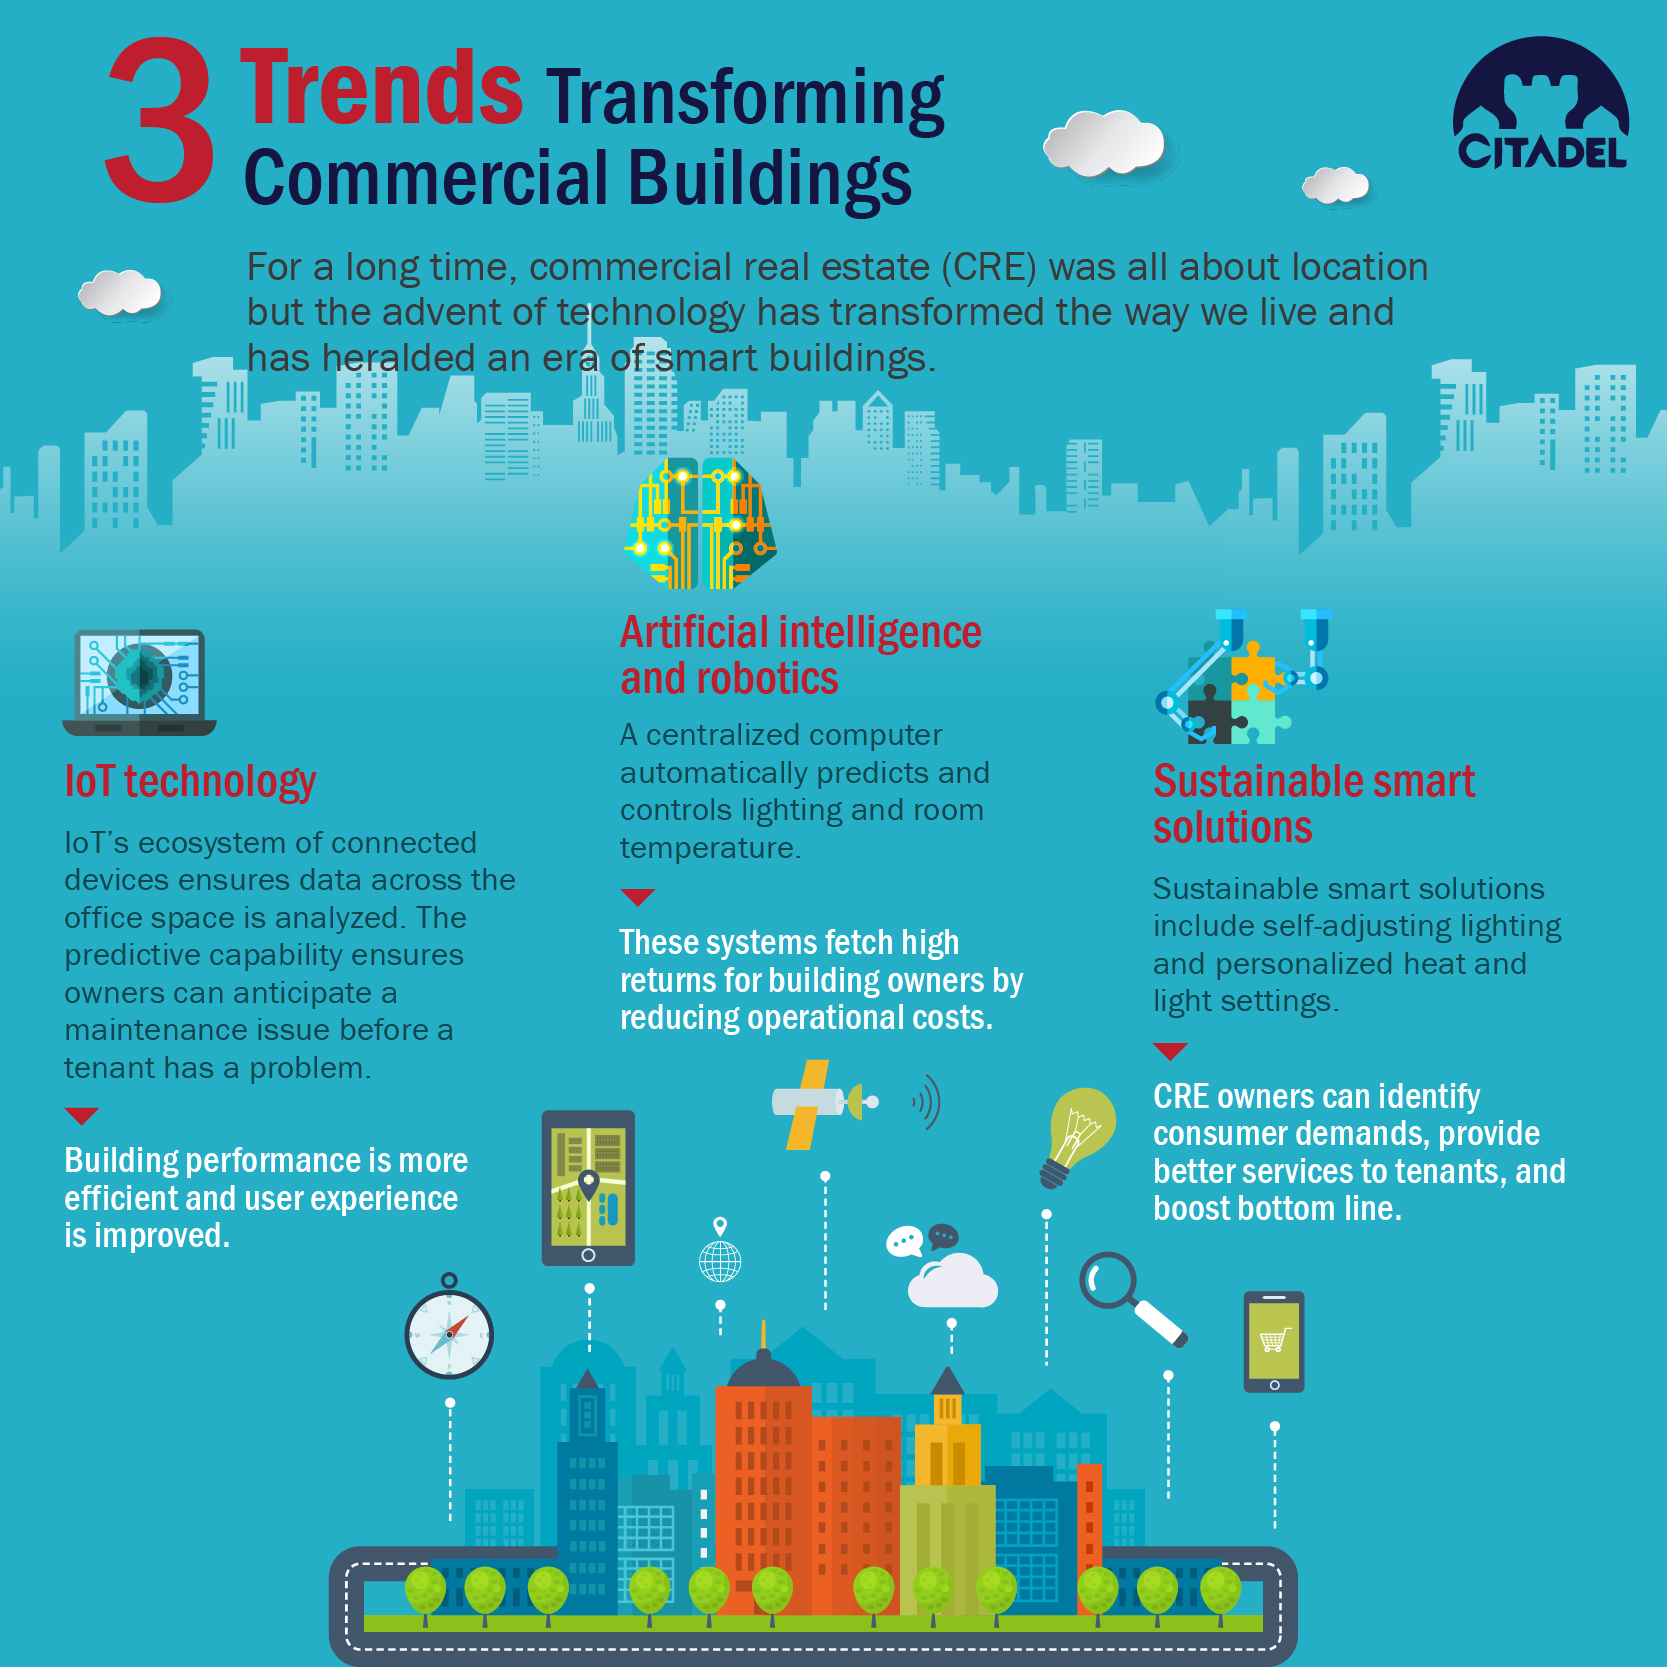 3 trends transforming commercial buildings